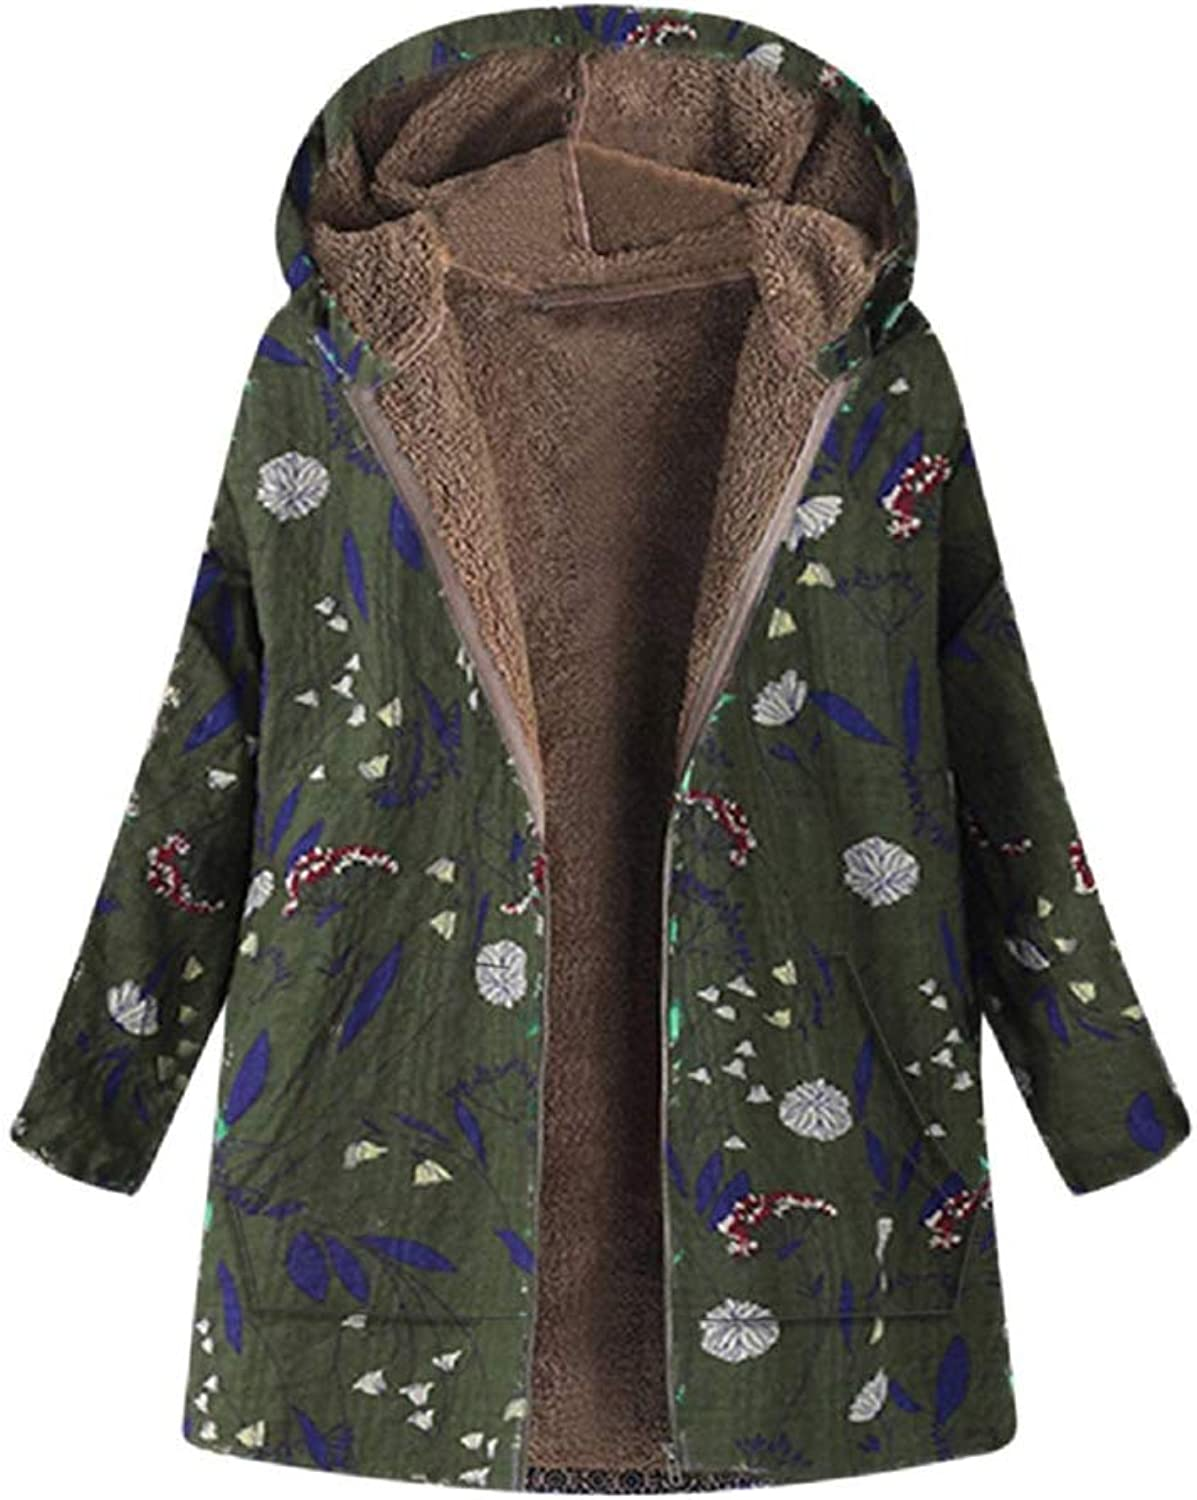 Cloudless Womens Winter Warm Outwear Floral Print Hooded Pockets Vintage Oversize Coats